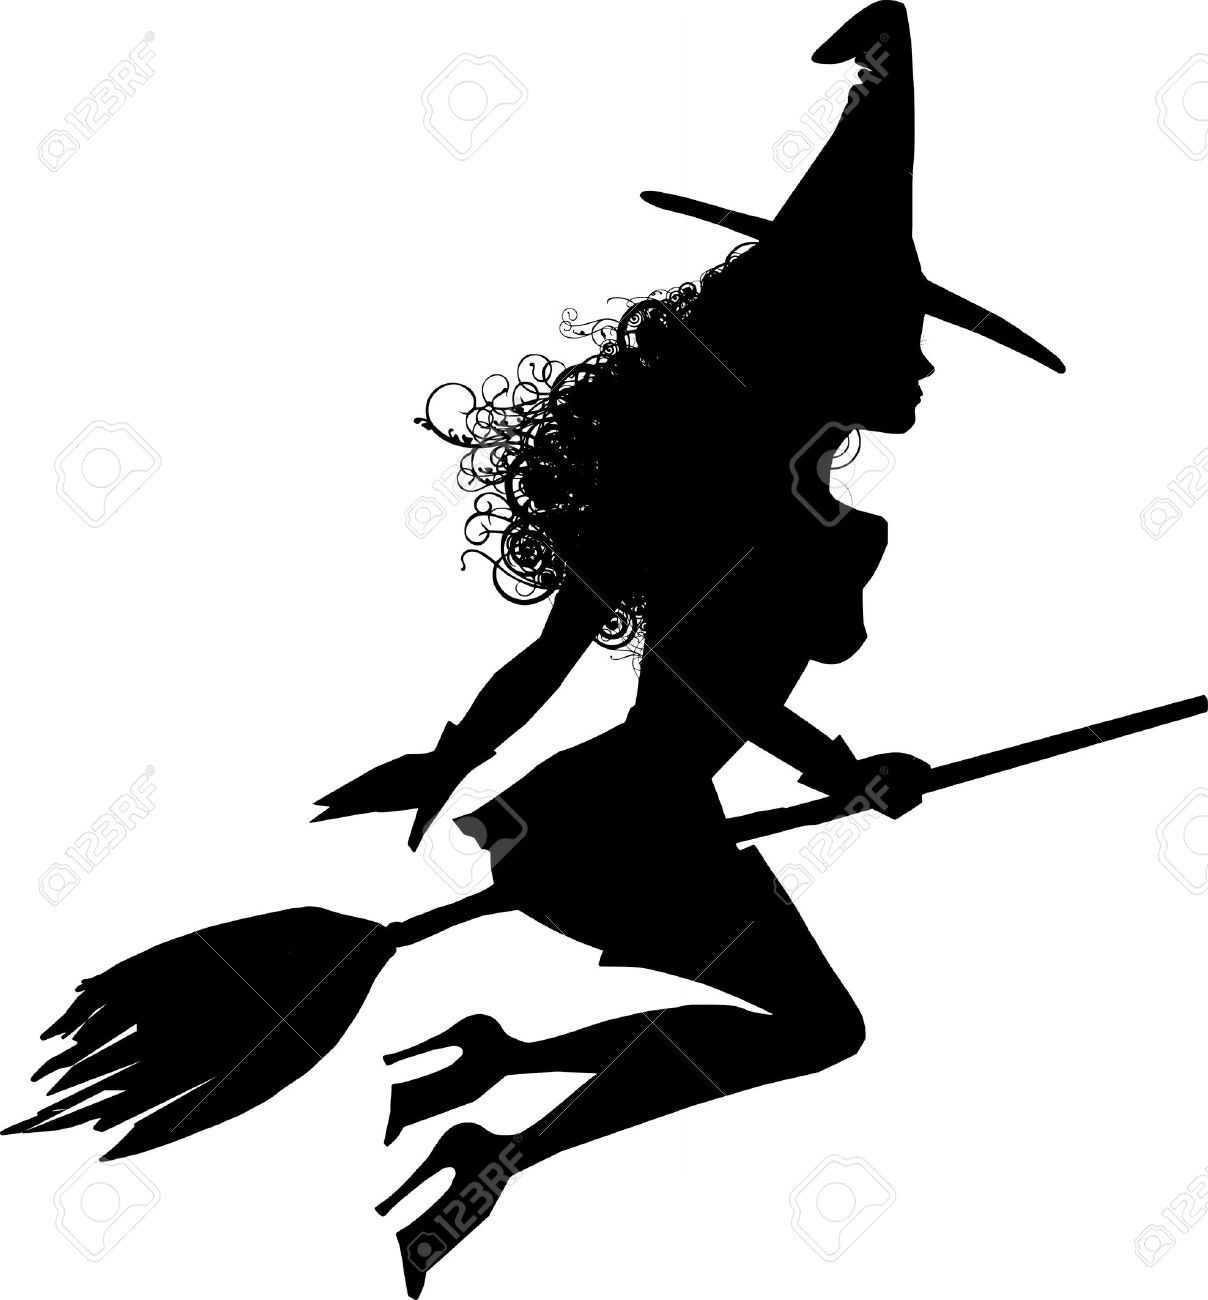 A Sensual Witch Silhouette Flying Stock Photo, Picture And Royalty ...